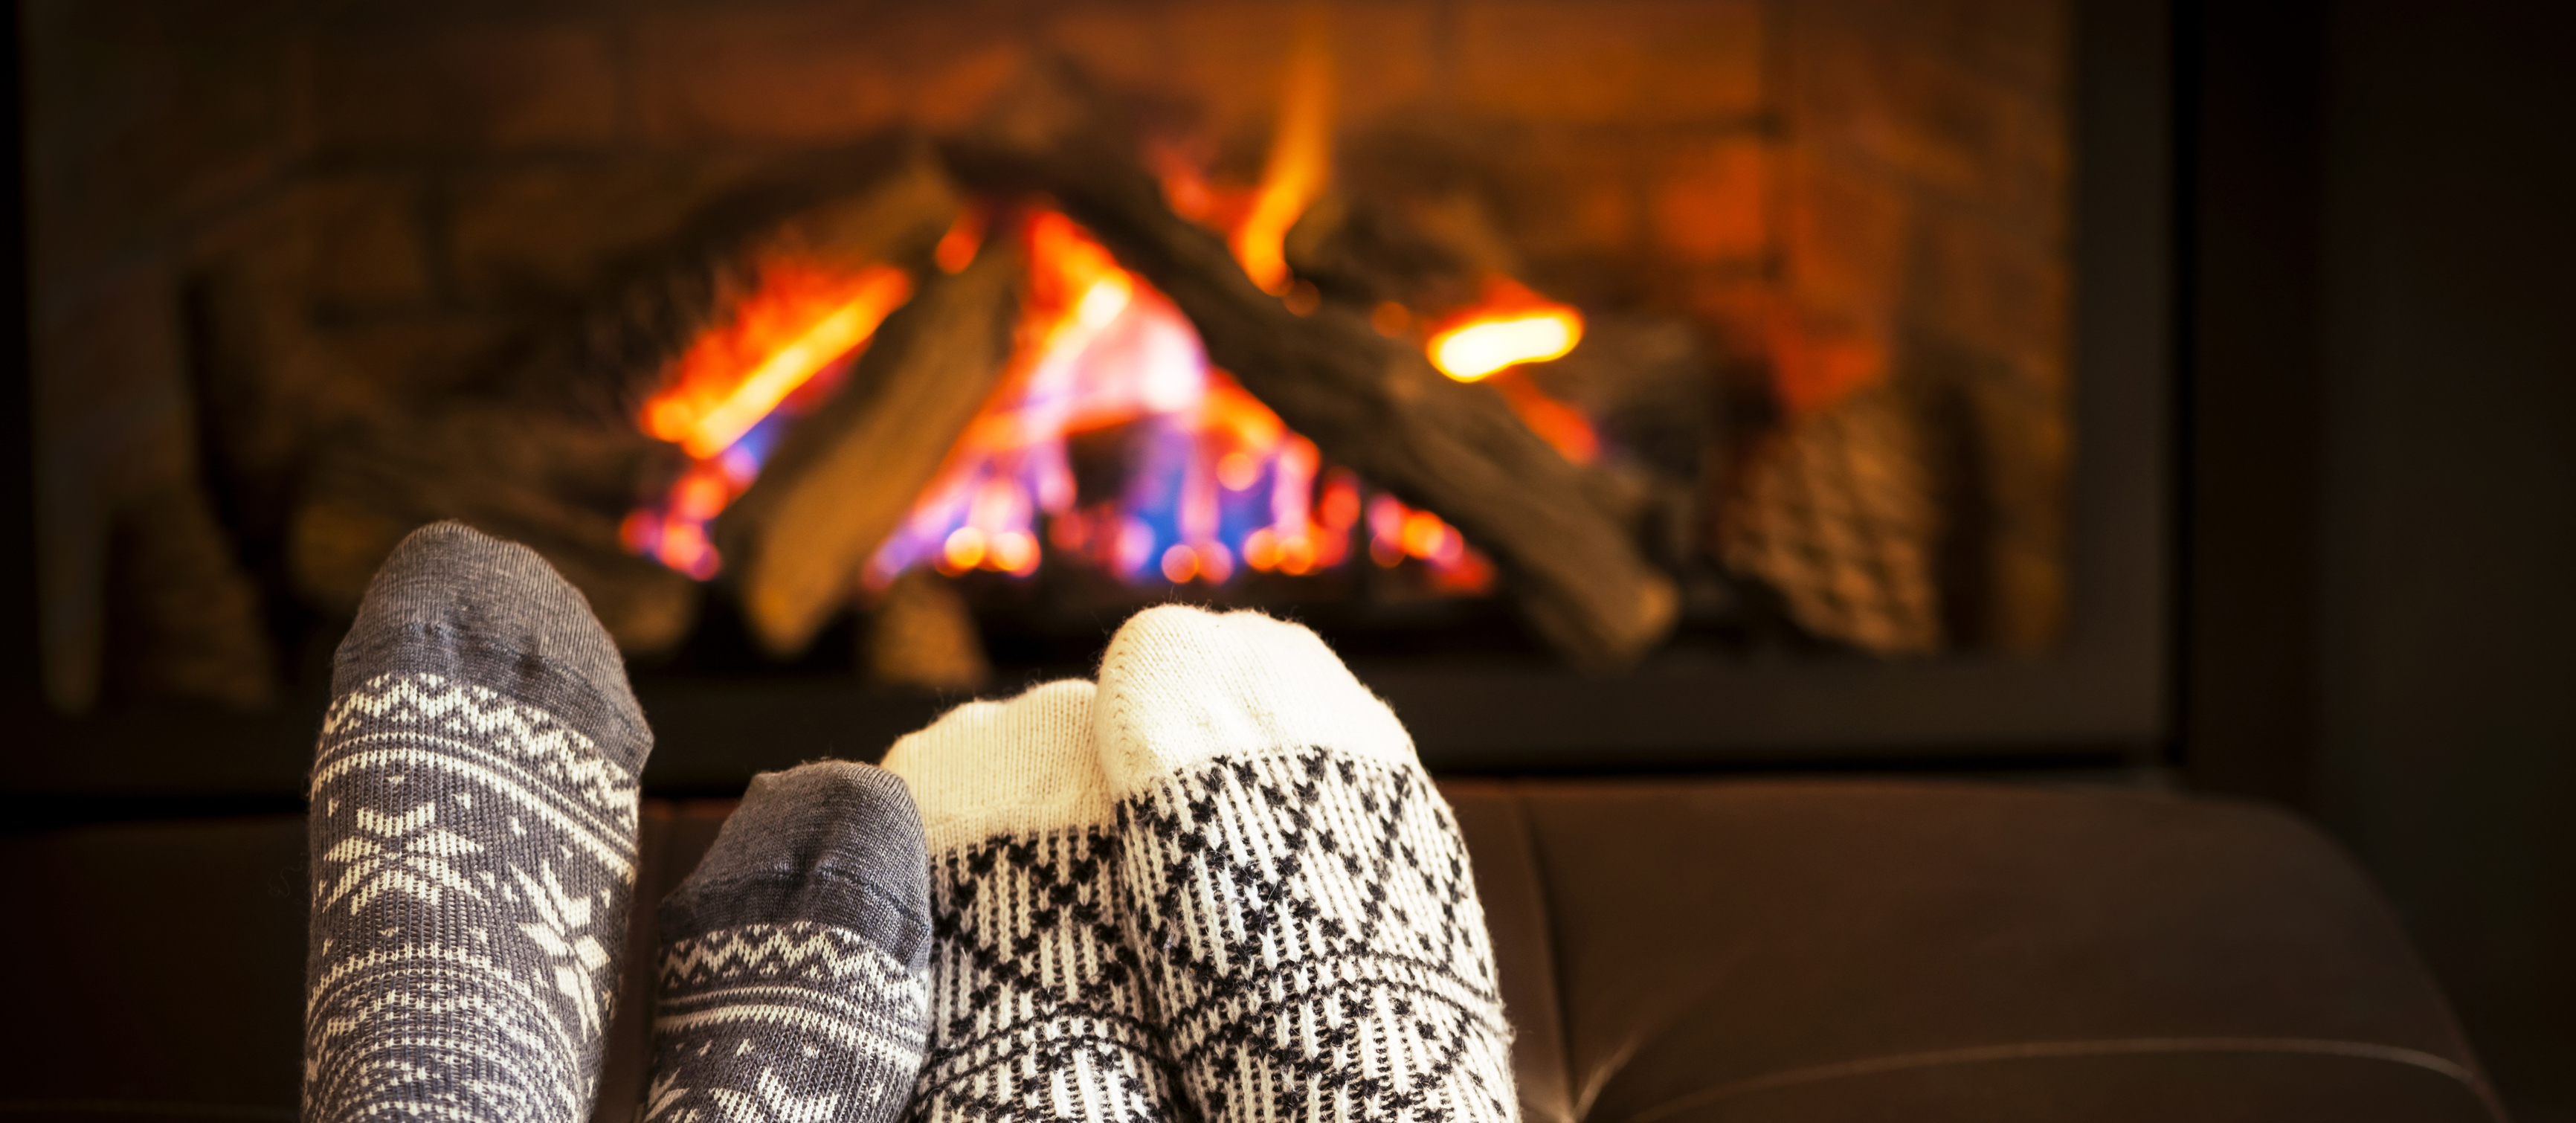 Make your home cozy and comfy this winter so you're happy to hibernate there this winter!